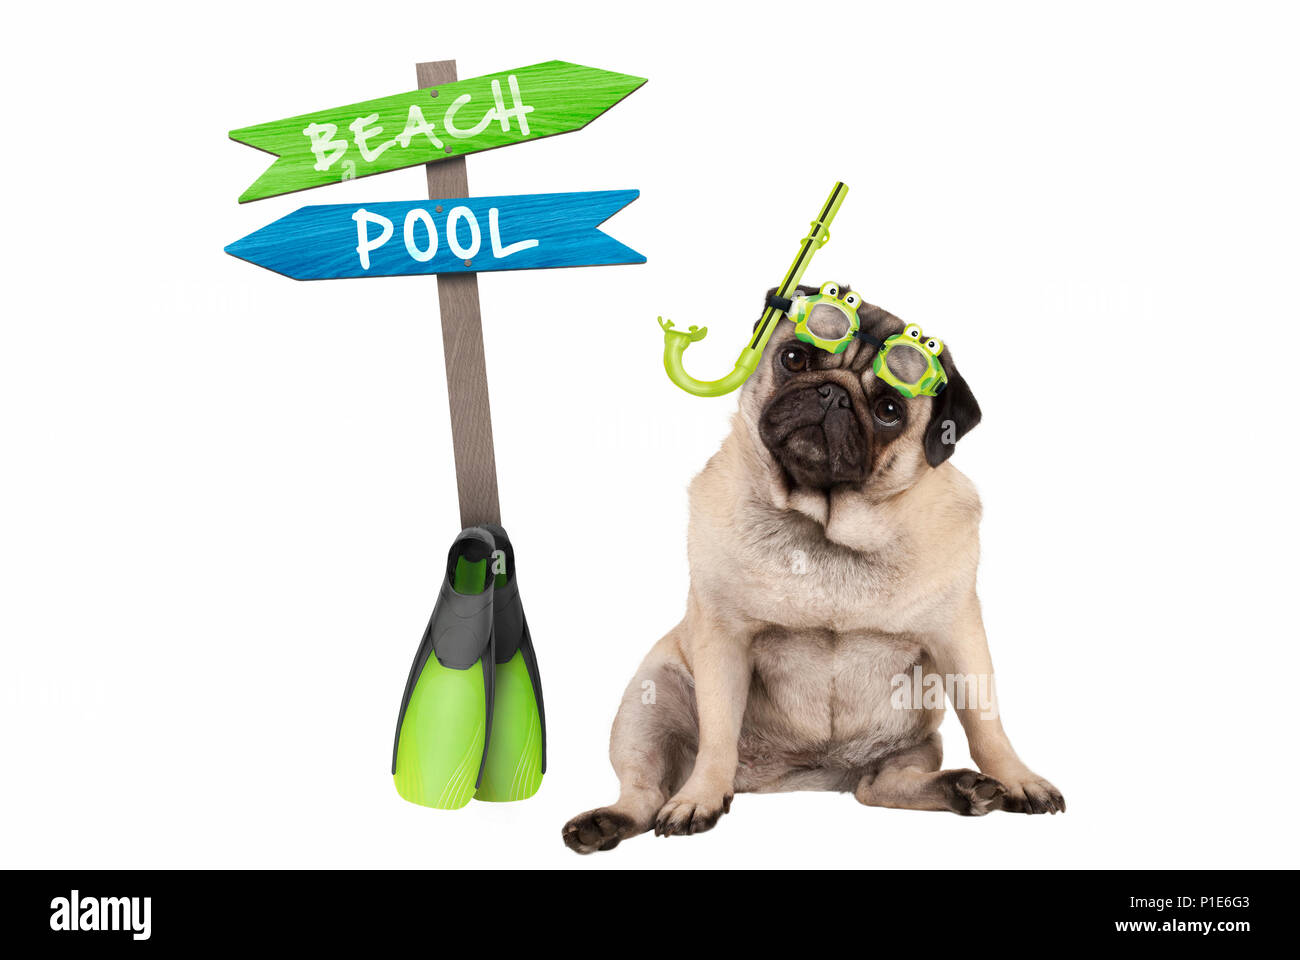 cute smart pug puppy dog sitting down wearing goggles and snorkel, next to signpost with text pool and beach, isolated on white background - Stock Image